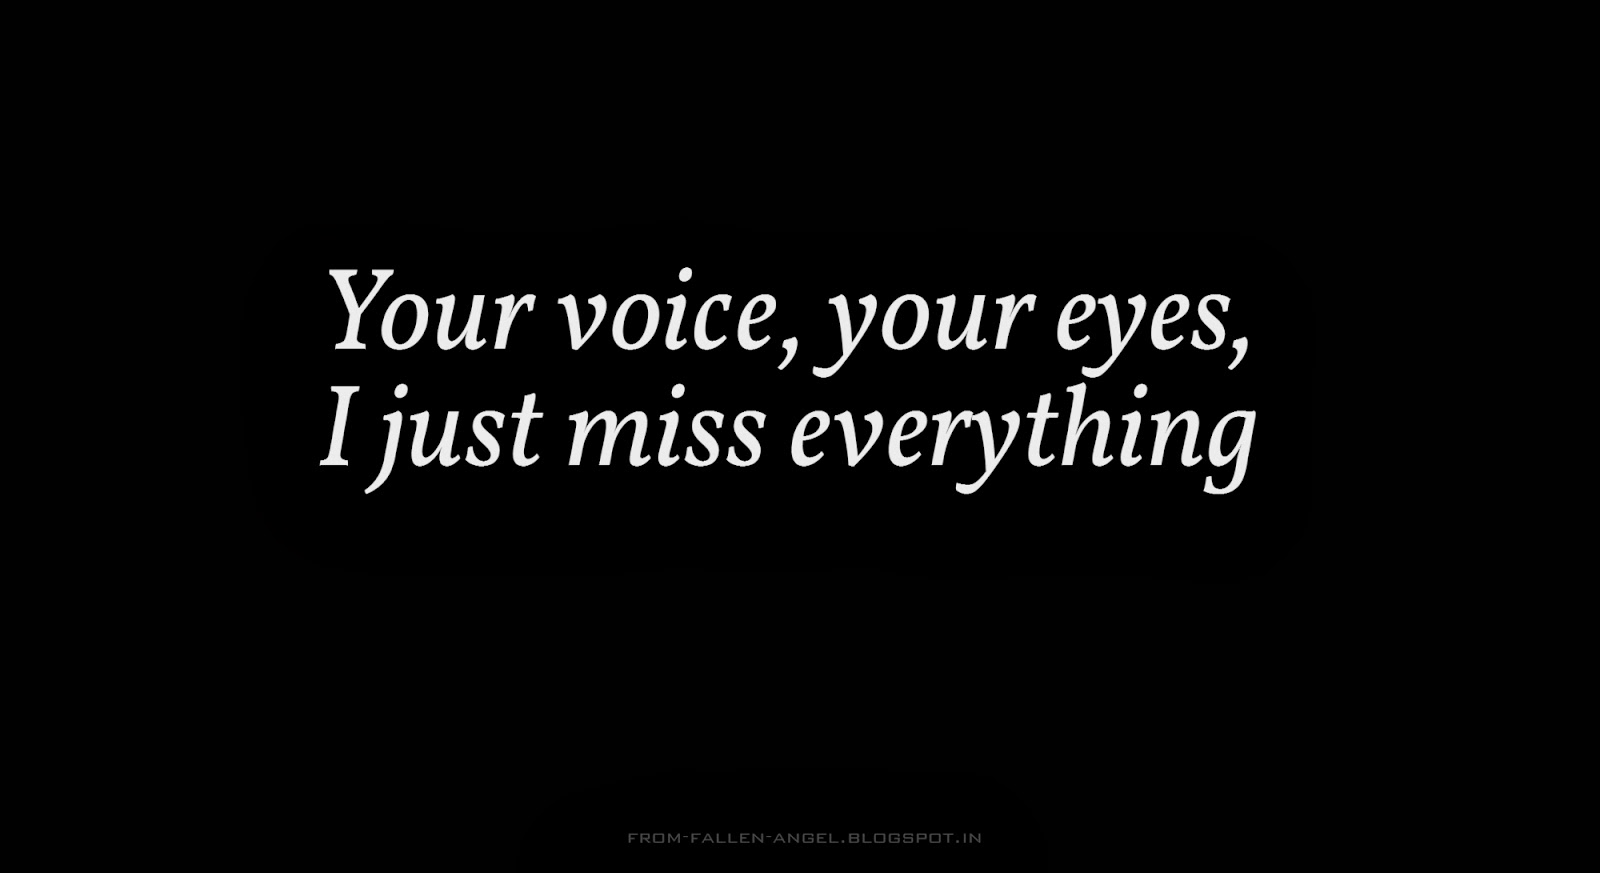 Your voice, your eyes, I just miss everything